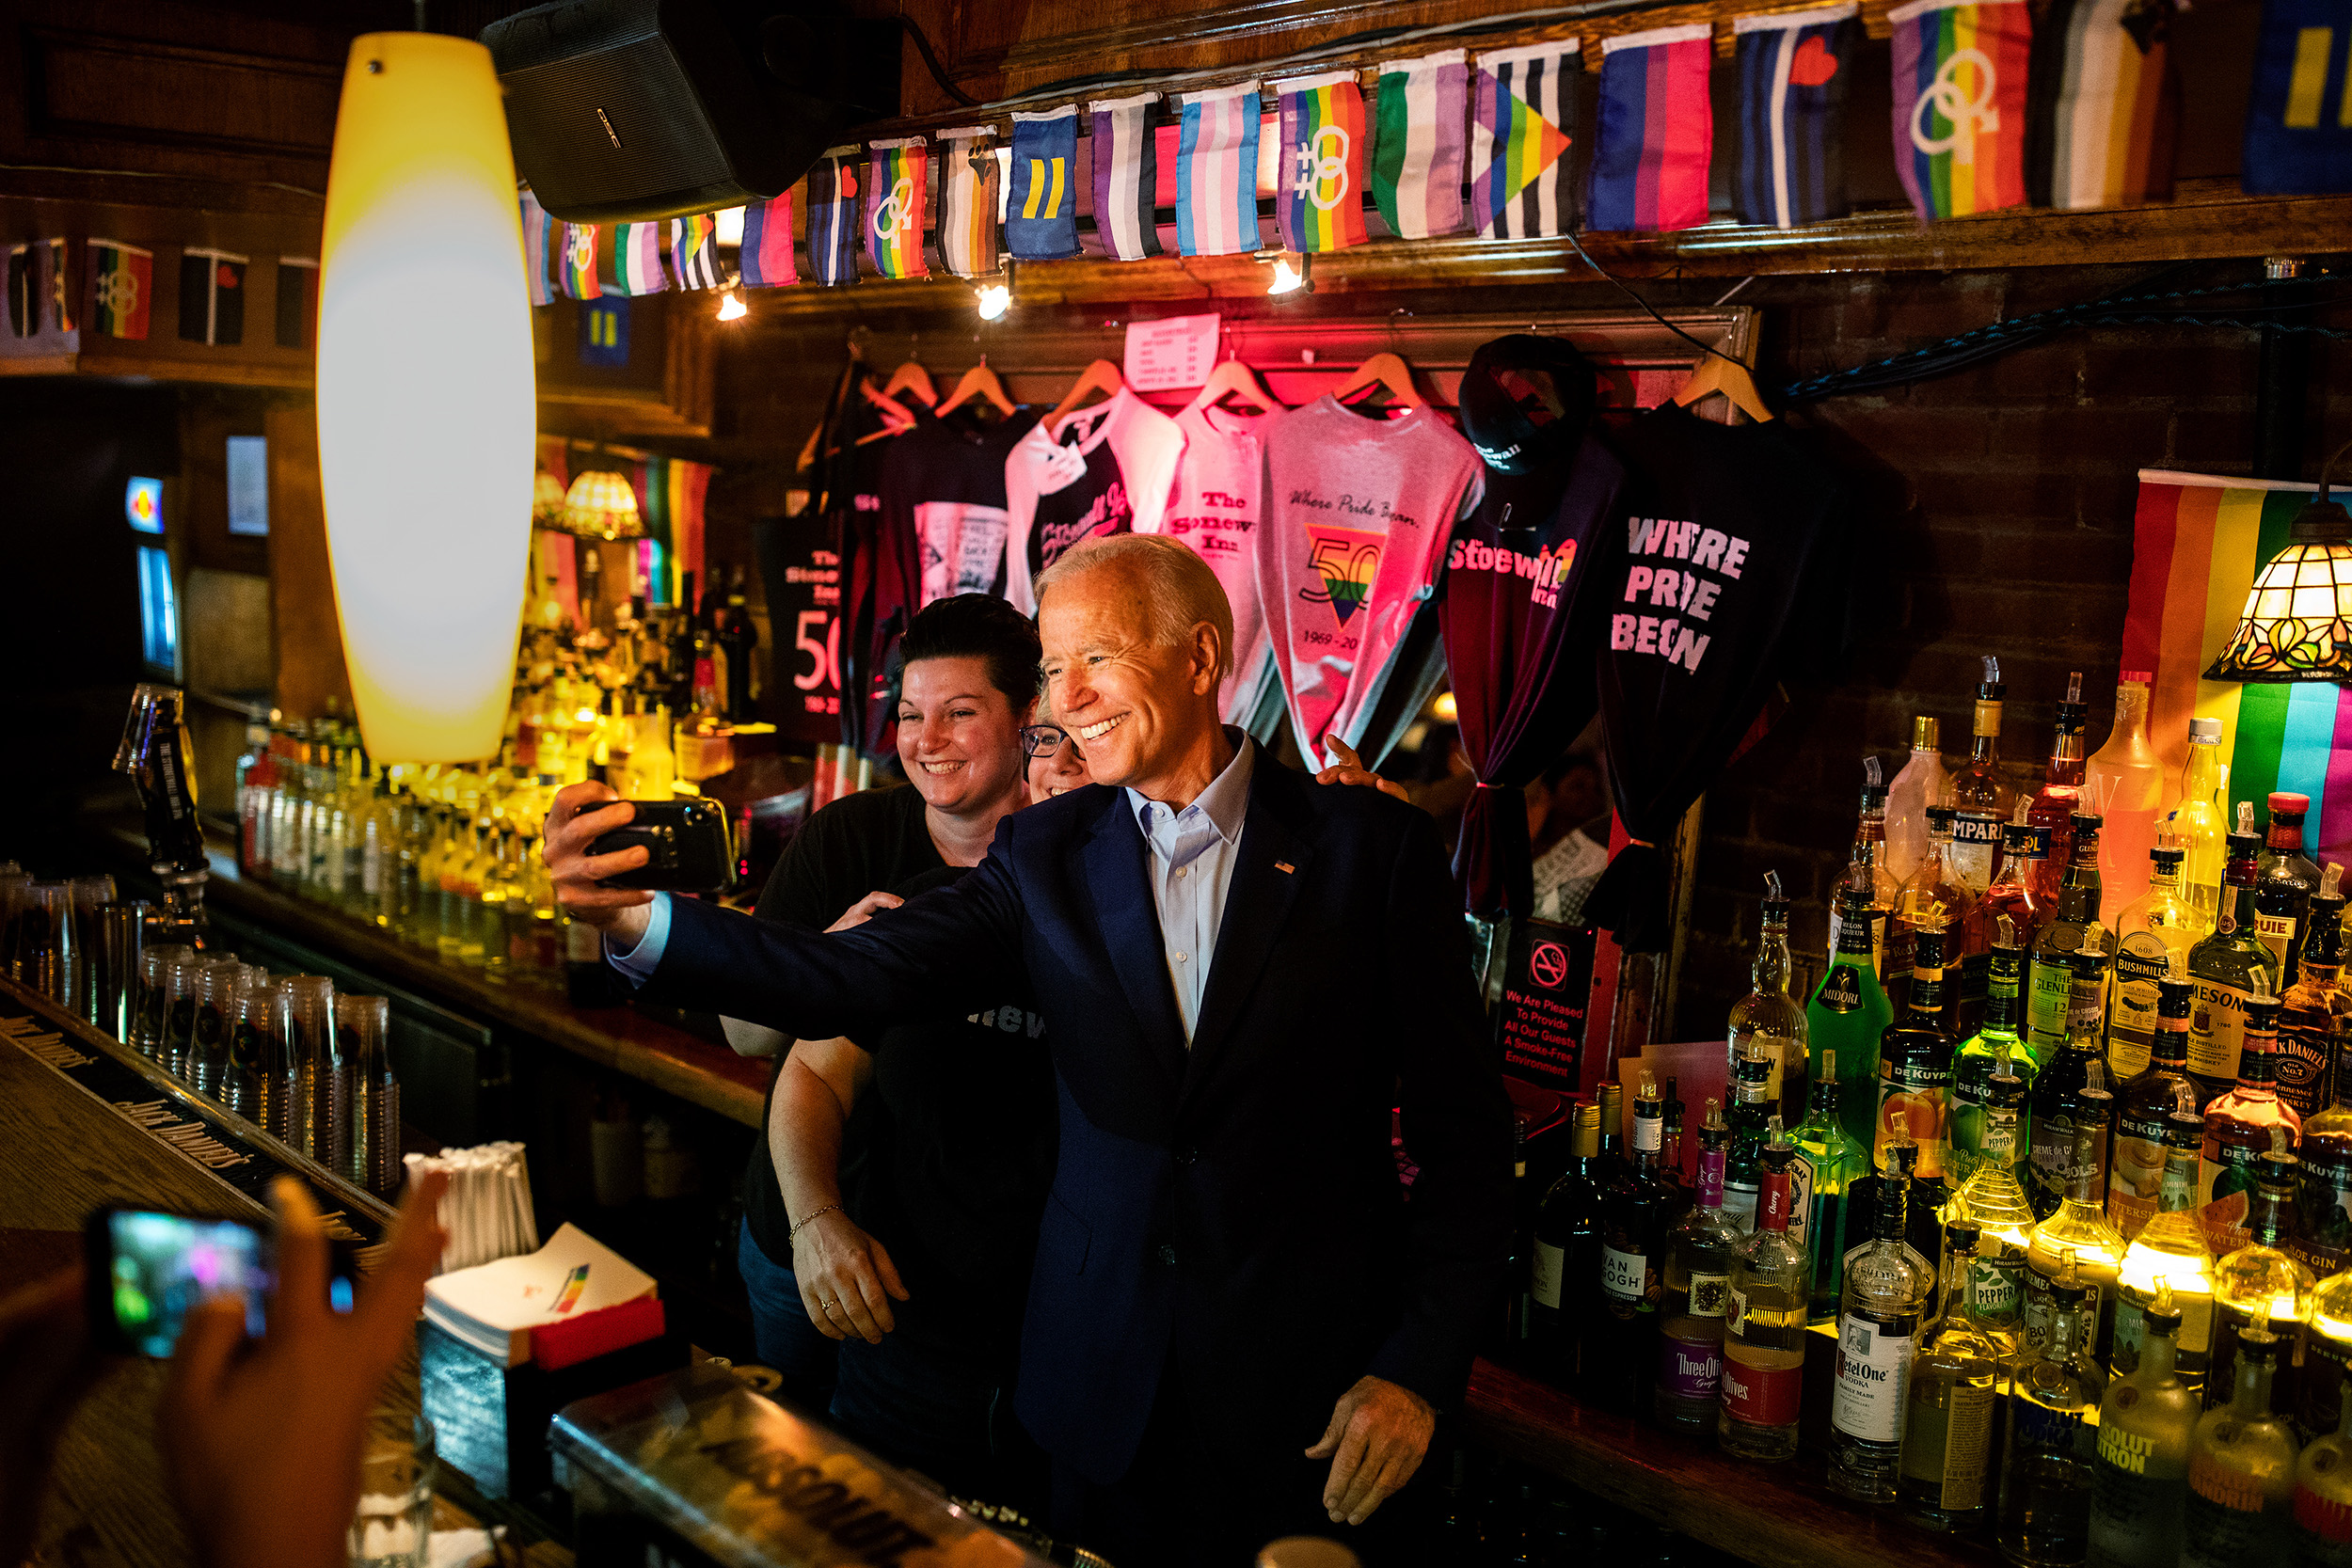 Democratic 2020 U.S. presidential candidate and former Vice President Joe Biden makes a stop at the Stonewall during his 2020 campaign in Manhattan, New York. The Stone Wall is a Gay bar & National Historic Landmark, site of the 1969 riots that launched the gay rights movement.